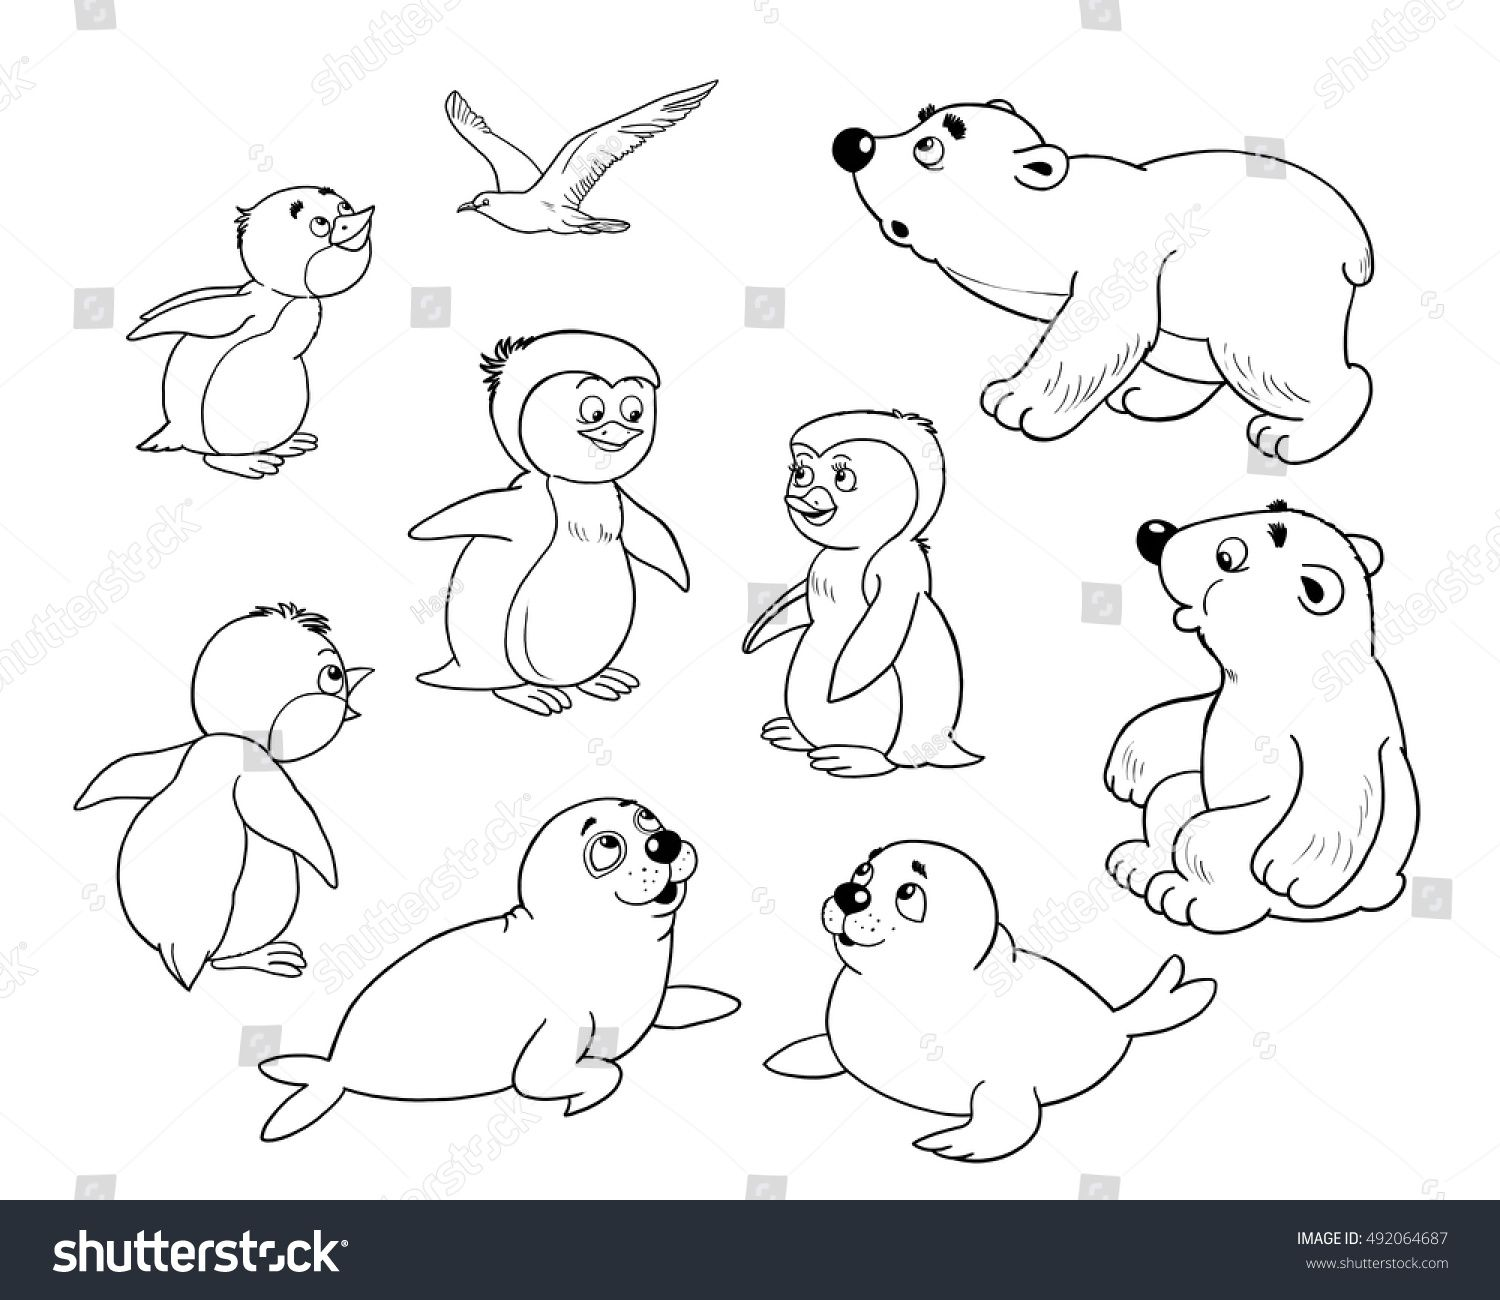 1500x1300 Improved Arctic Animal Coloring Pages Simple Animals Printable